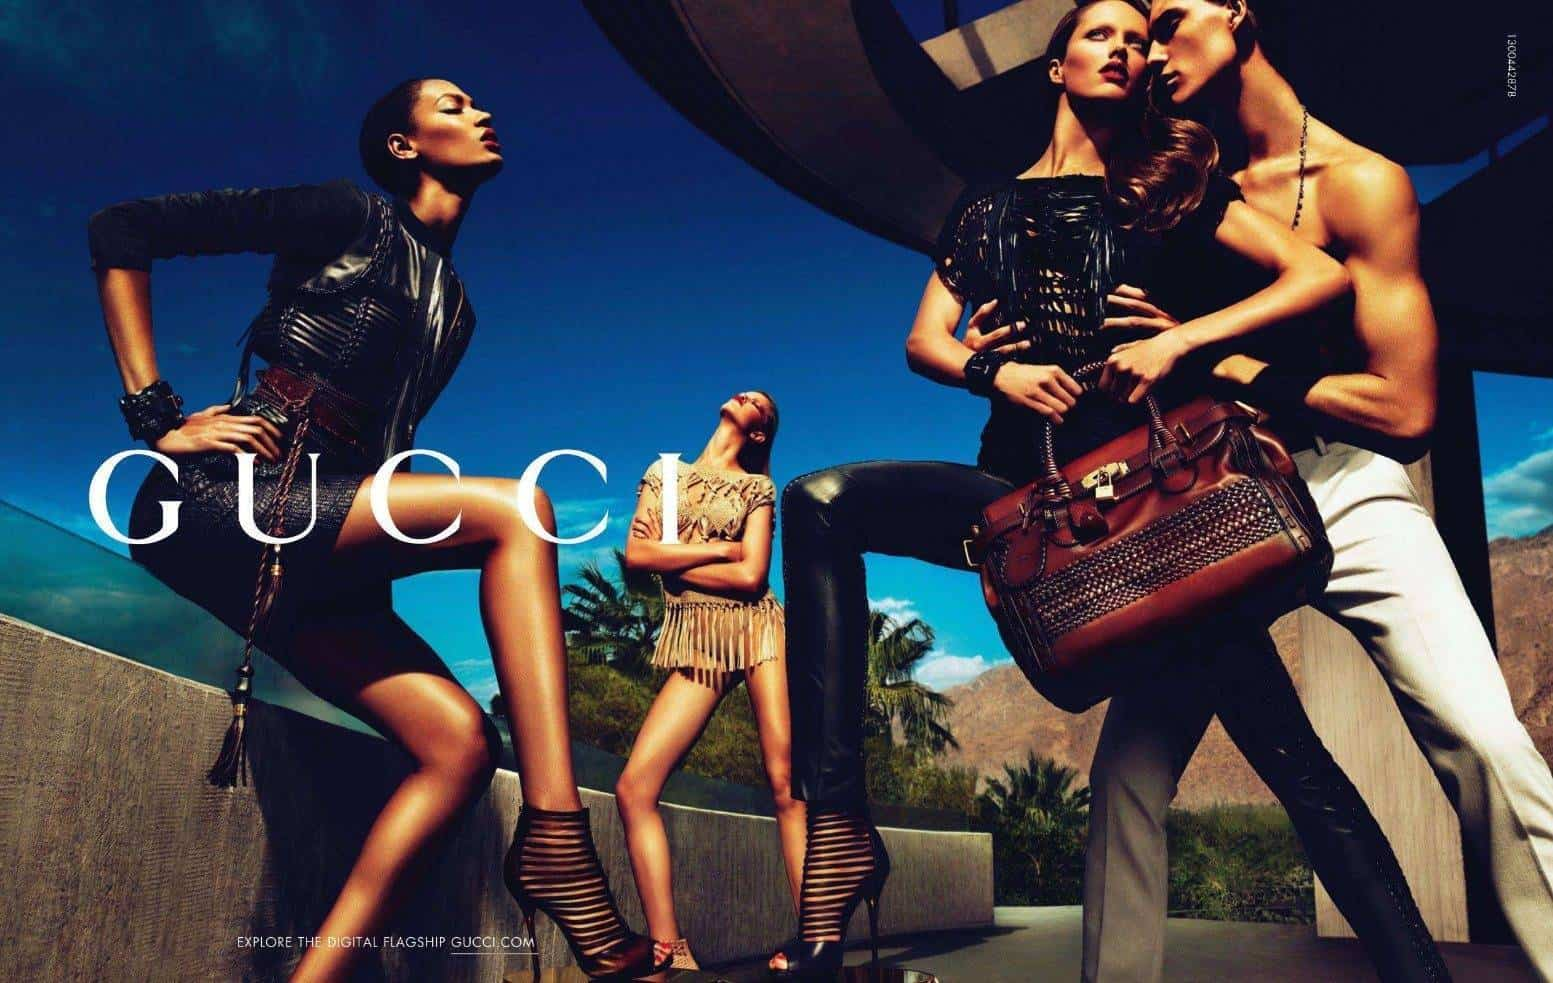 The guilty pleasure of Gucci